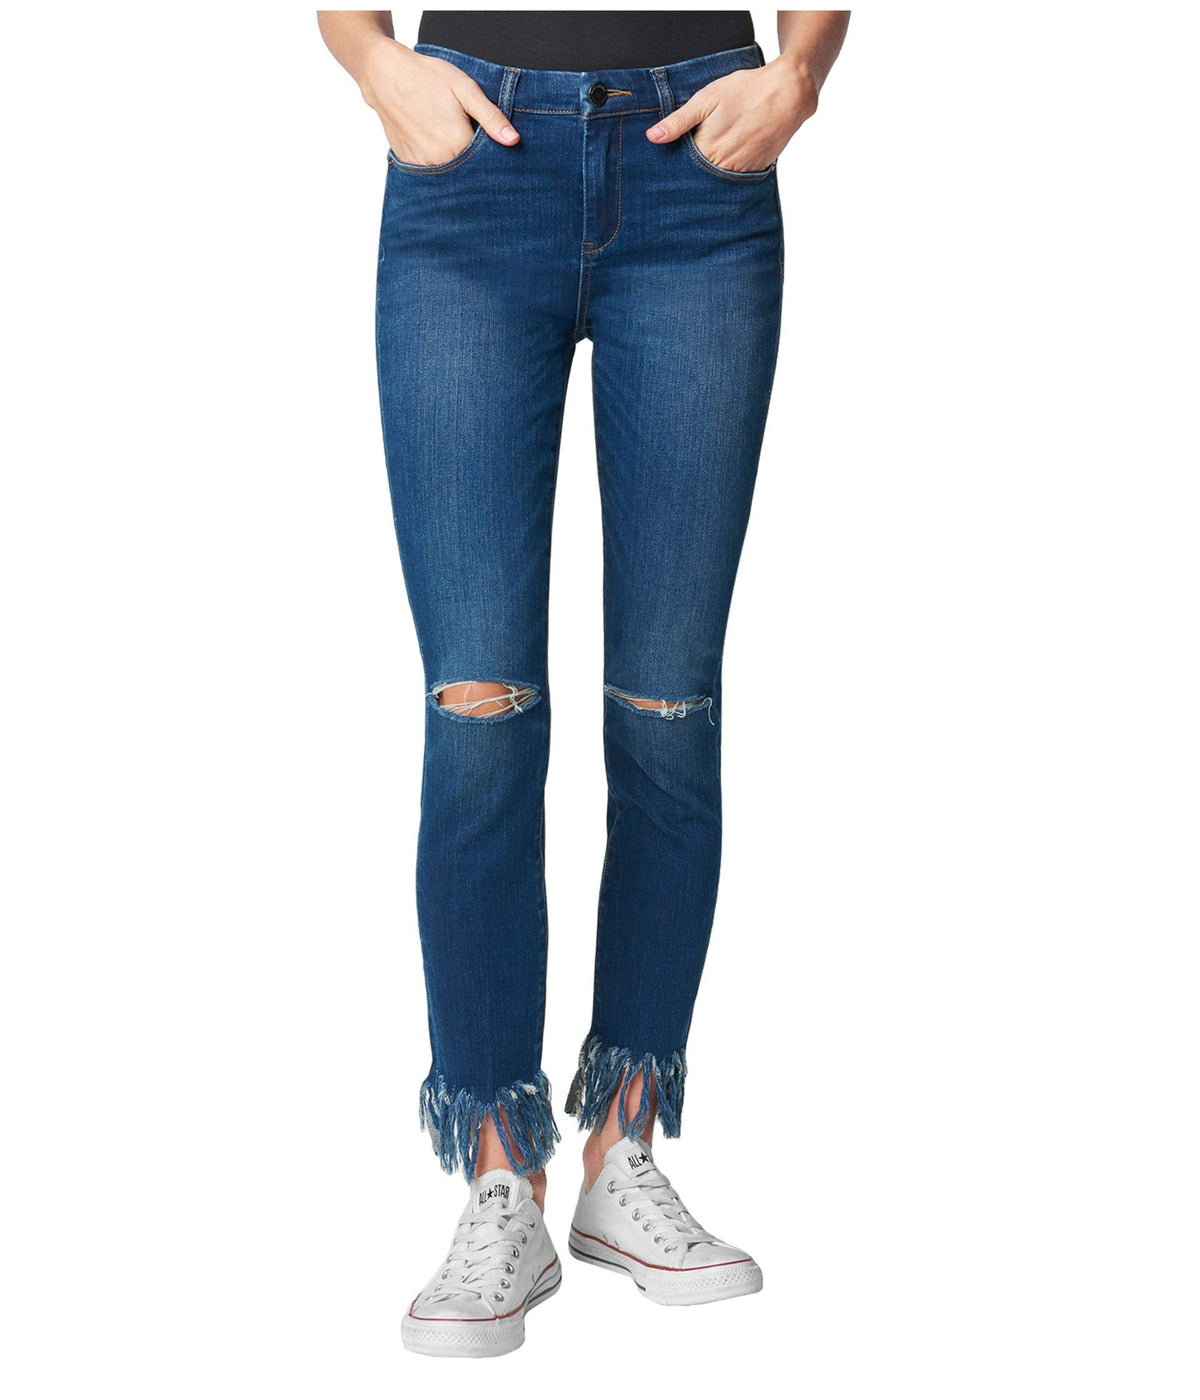 Denim Skinny with Fringe Hem Detail in Over Packed